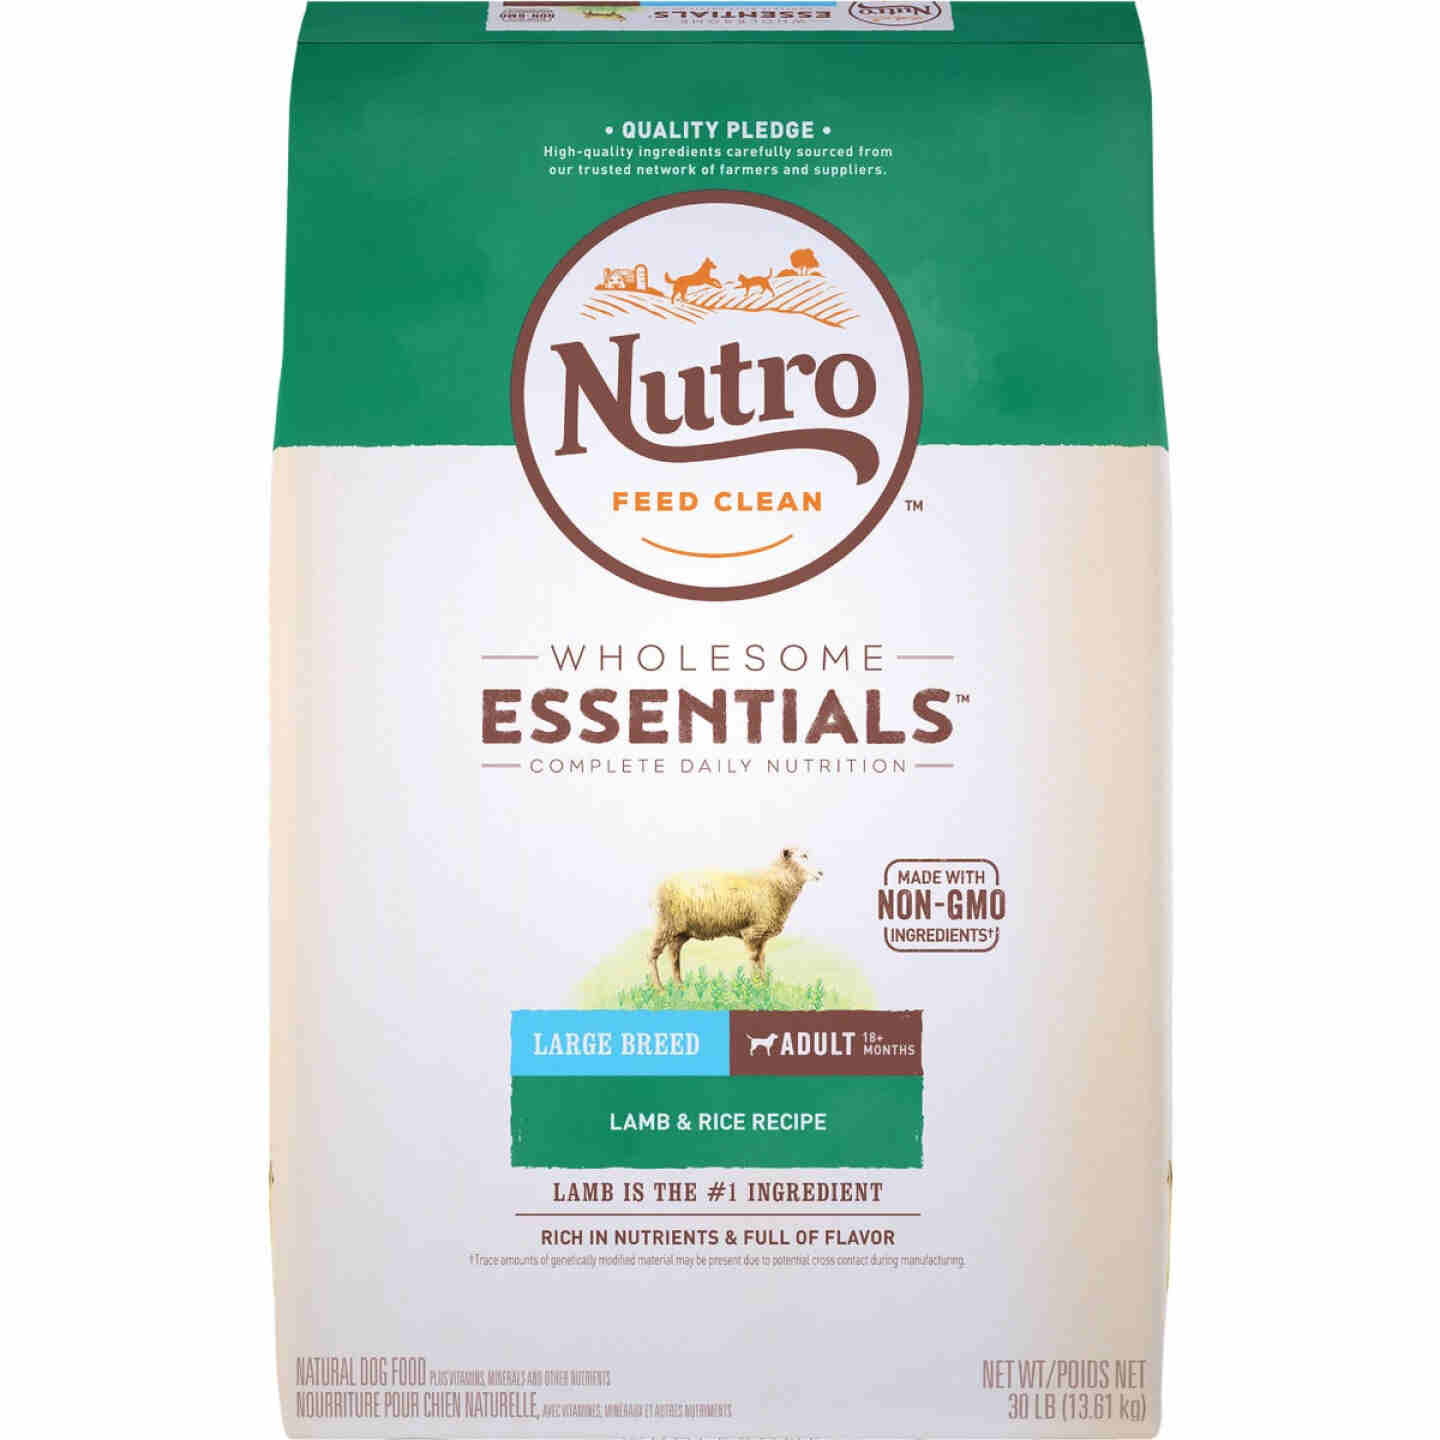 Nutro Wholesome Essentials 30 Lb. Lamb & Rice Large Breed Adult Dry Dog Food Image 1